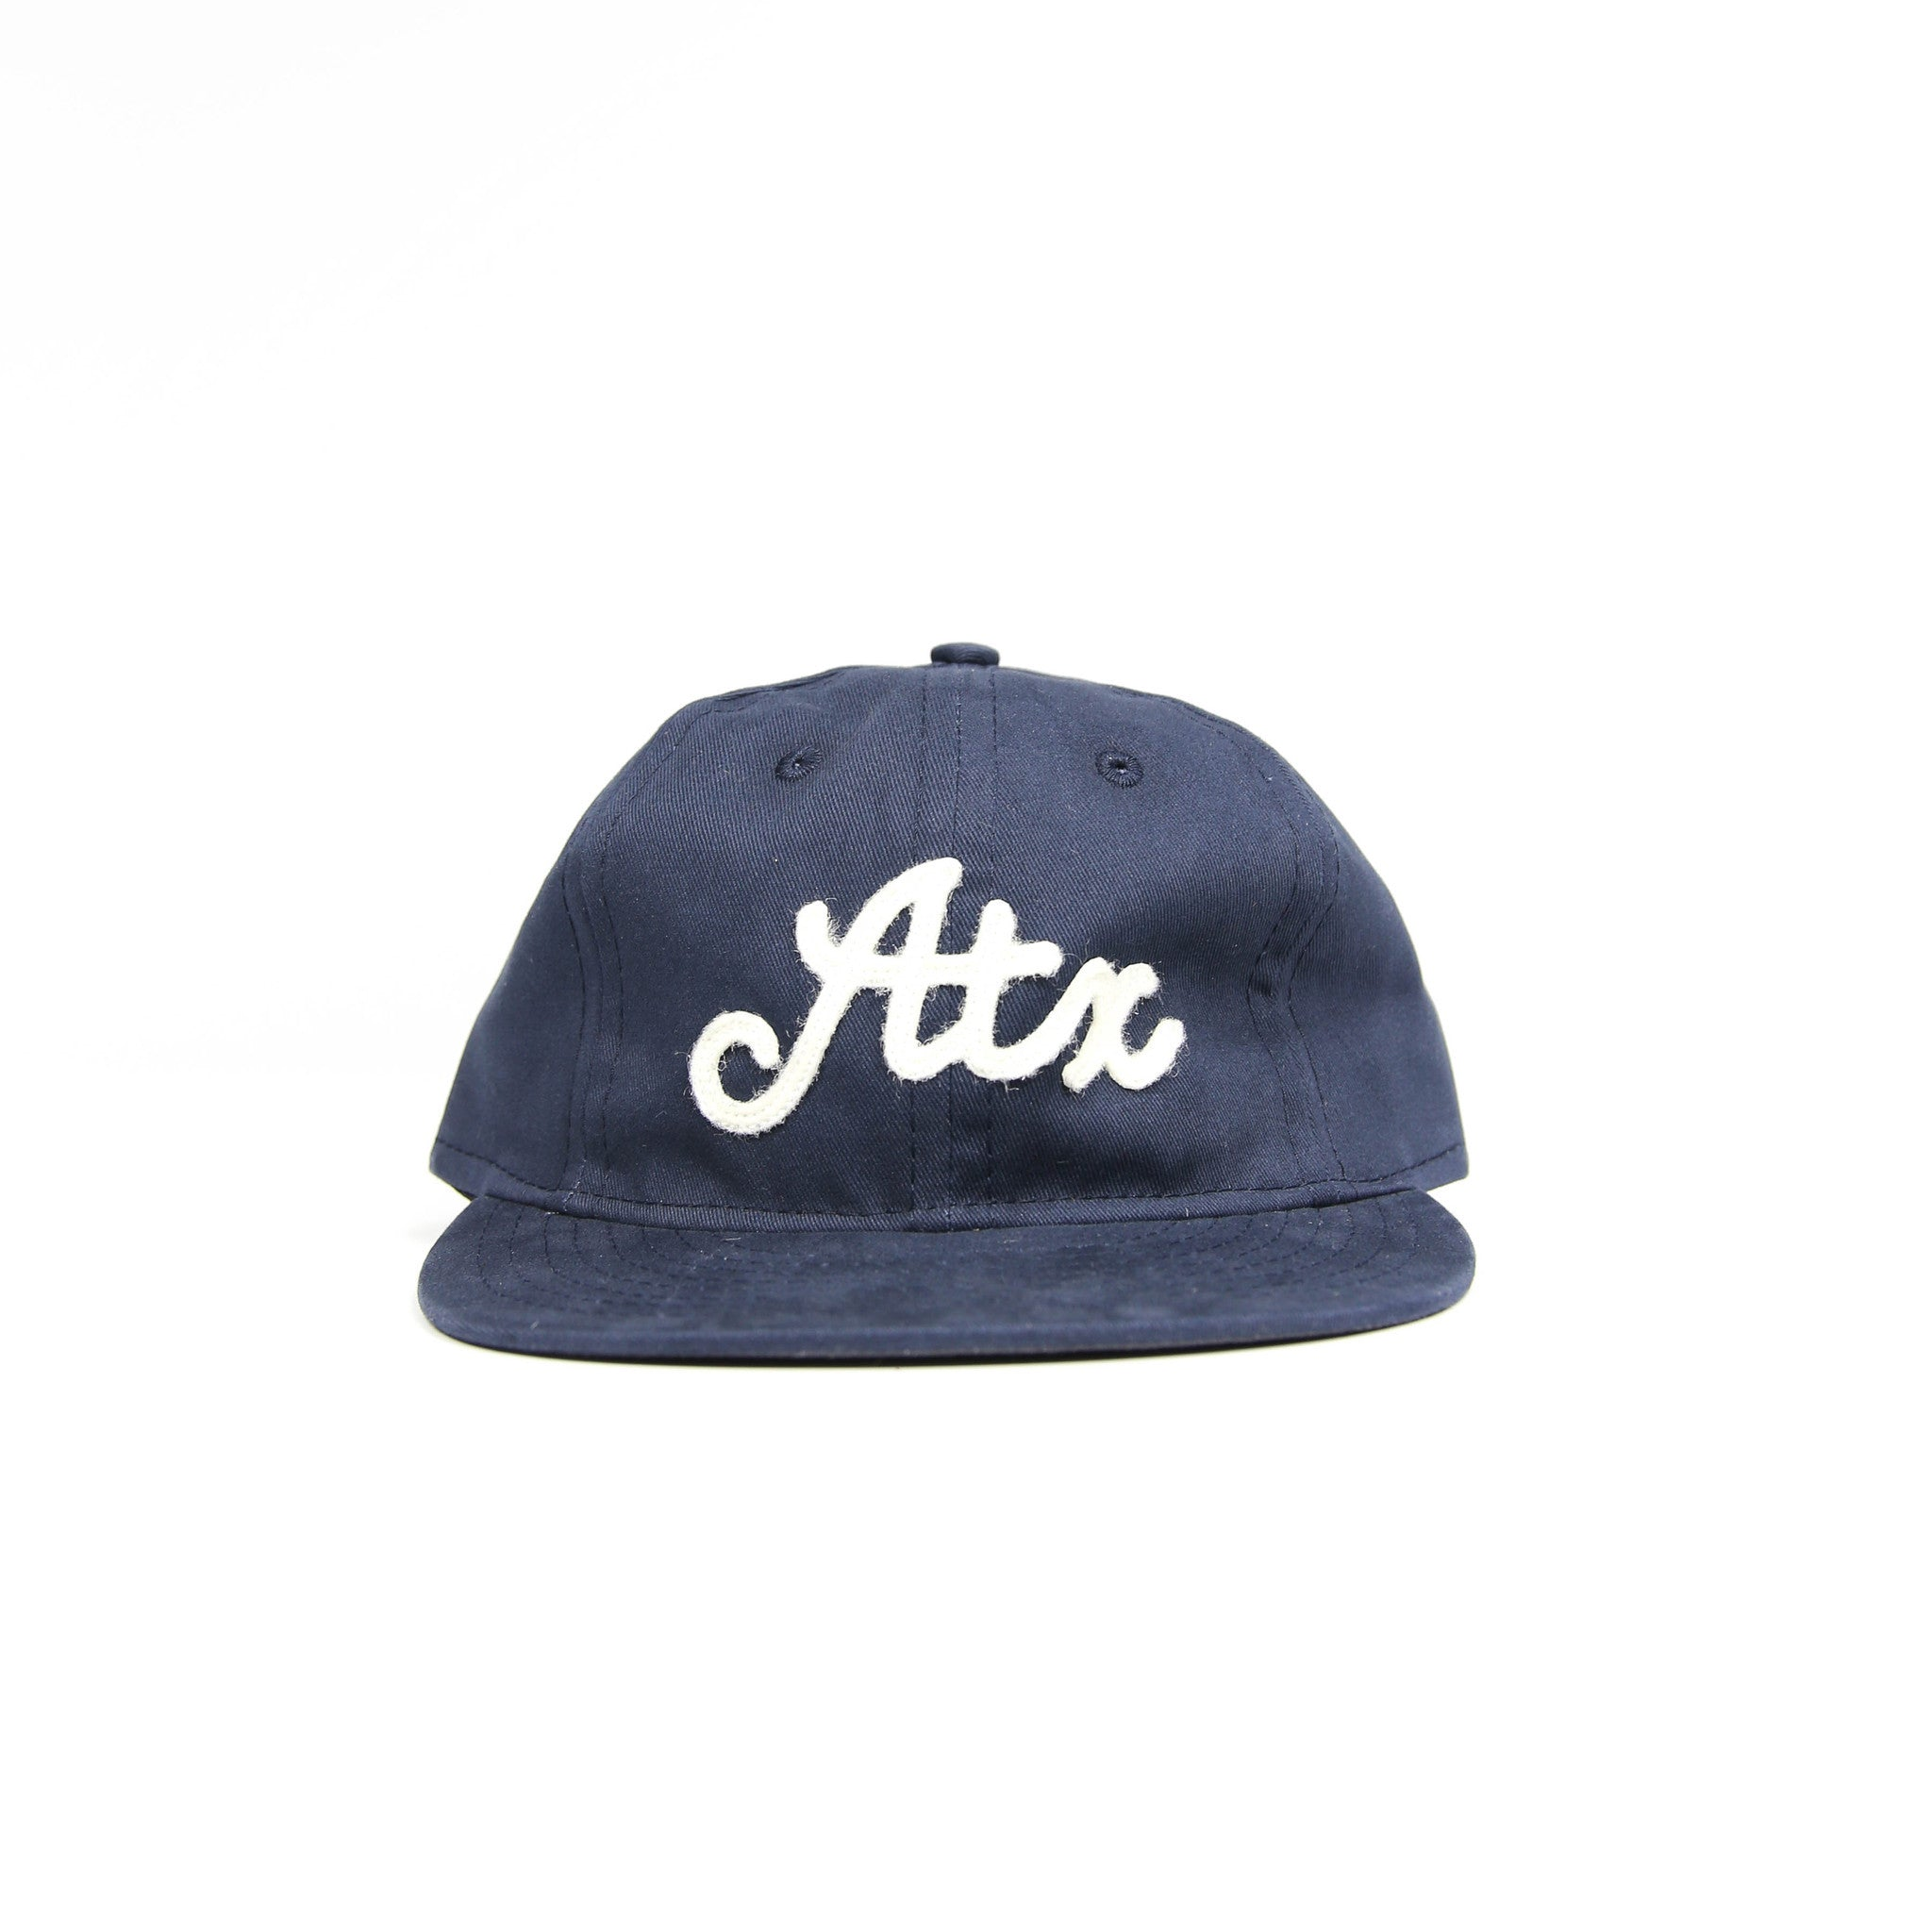 ATX Hat - Navy & Cream